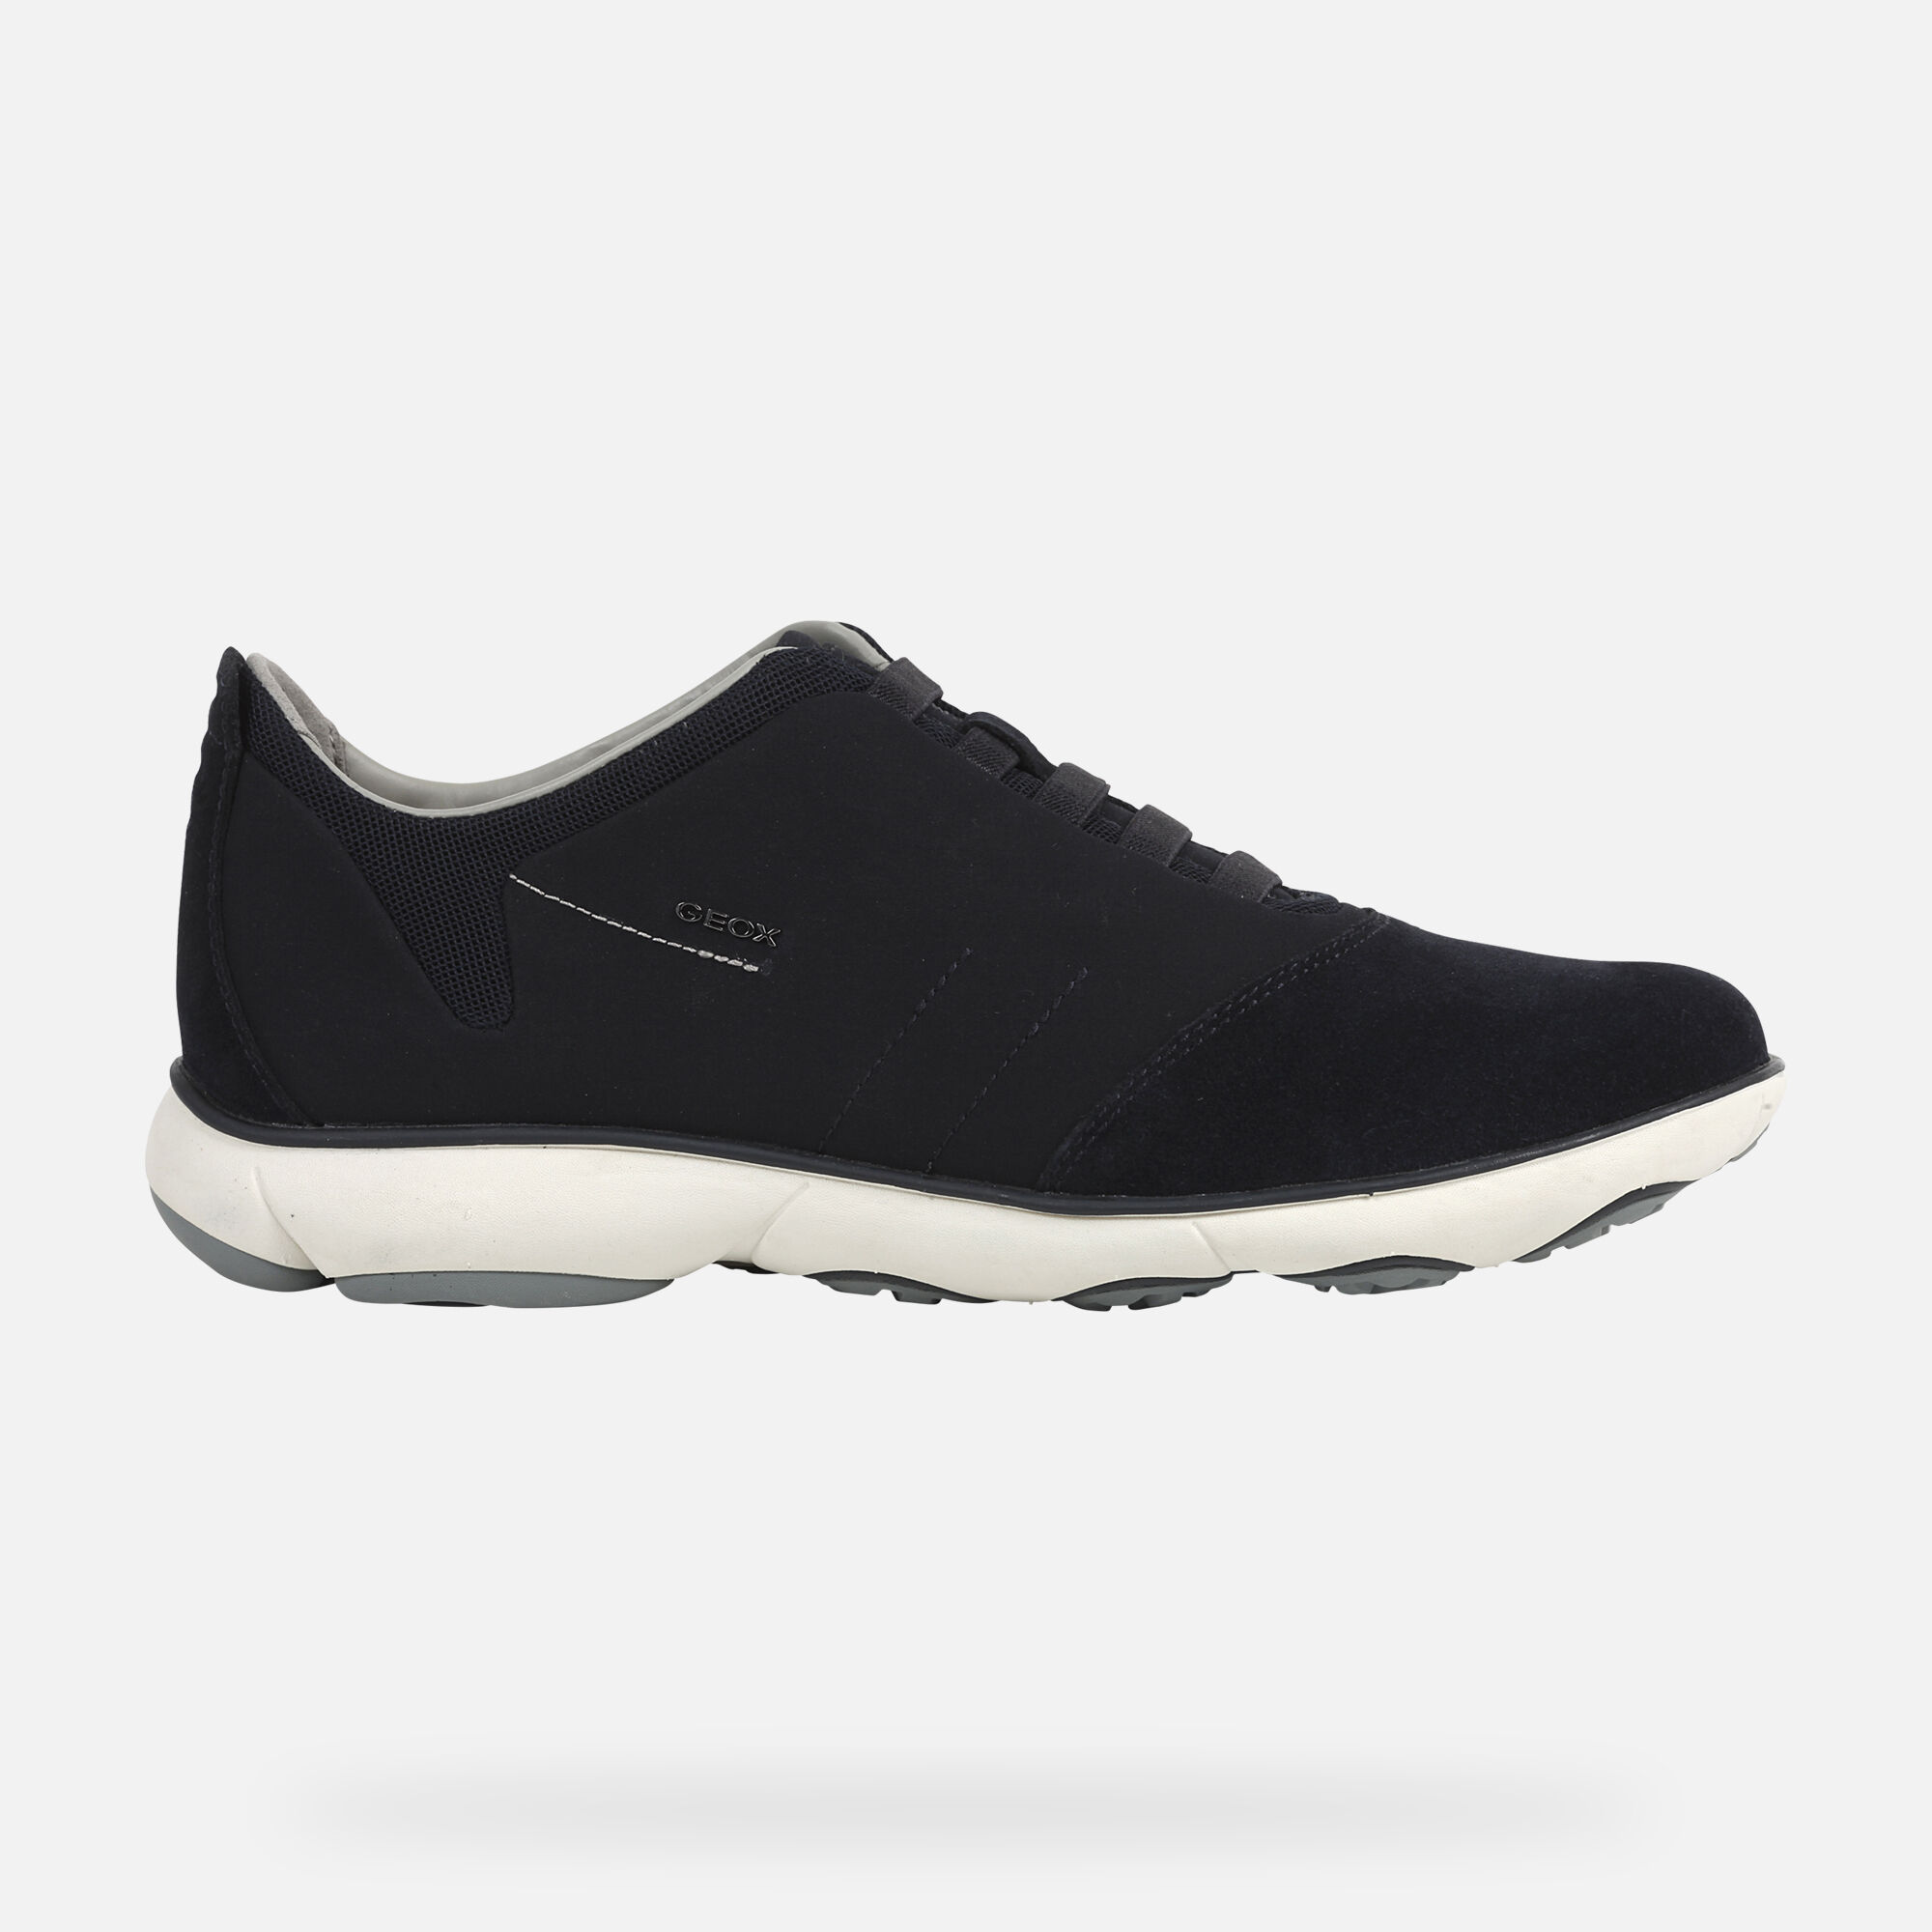 Details about Geox Nebula Mens Black Suede Mesh Shoes Size UK 6 12